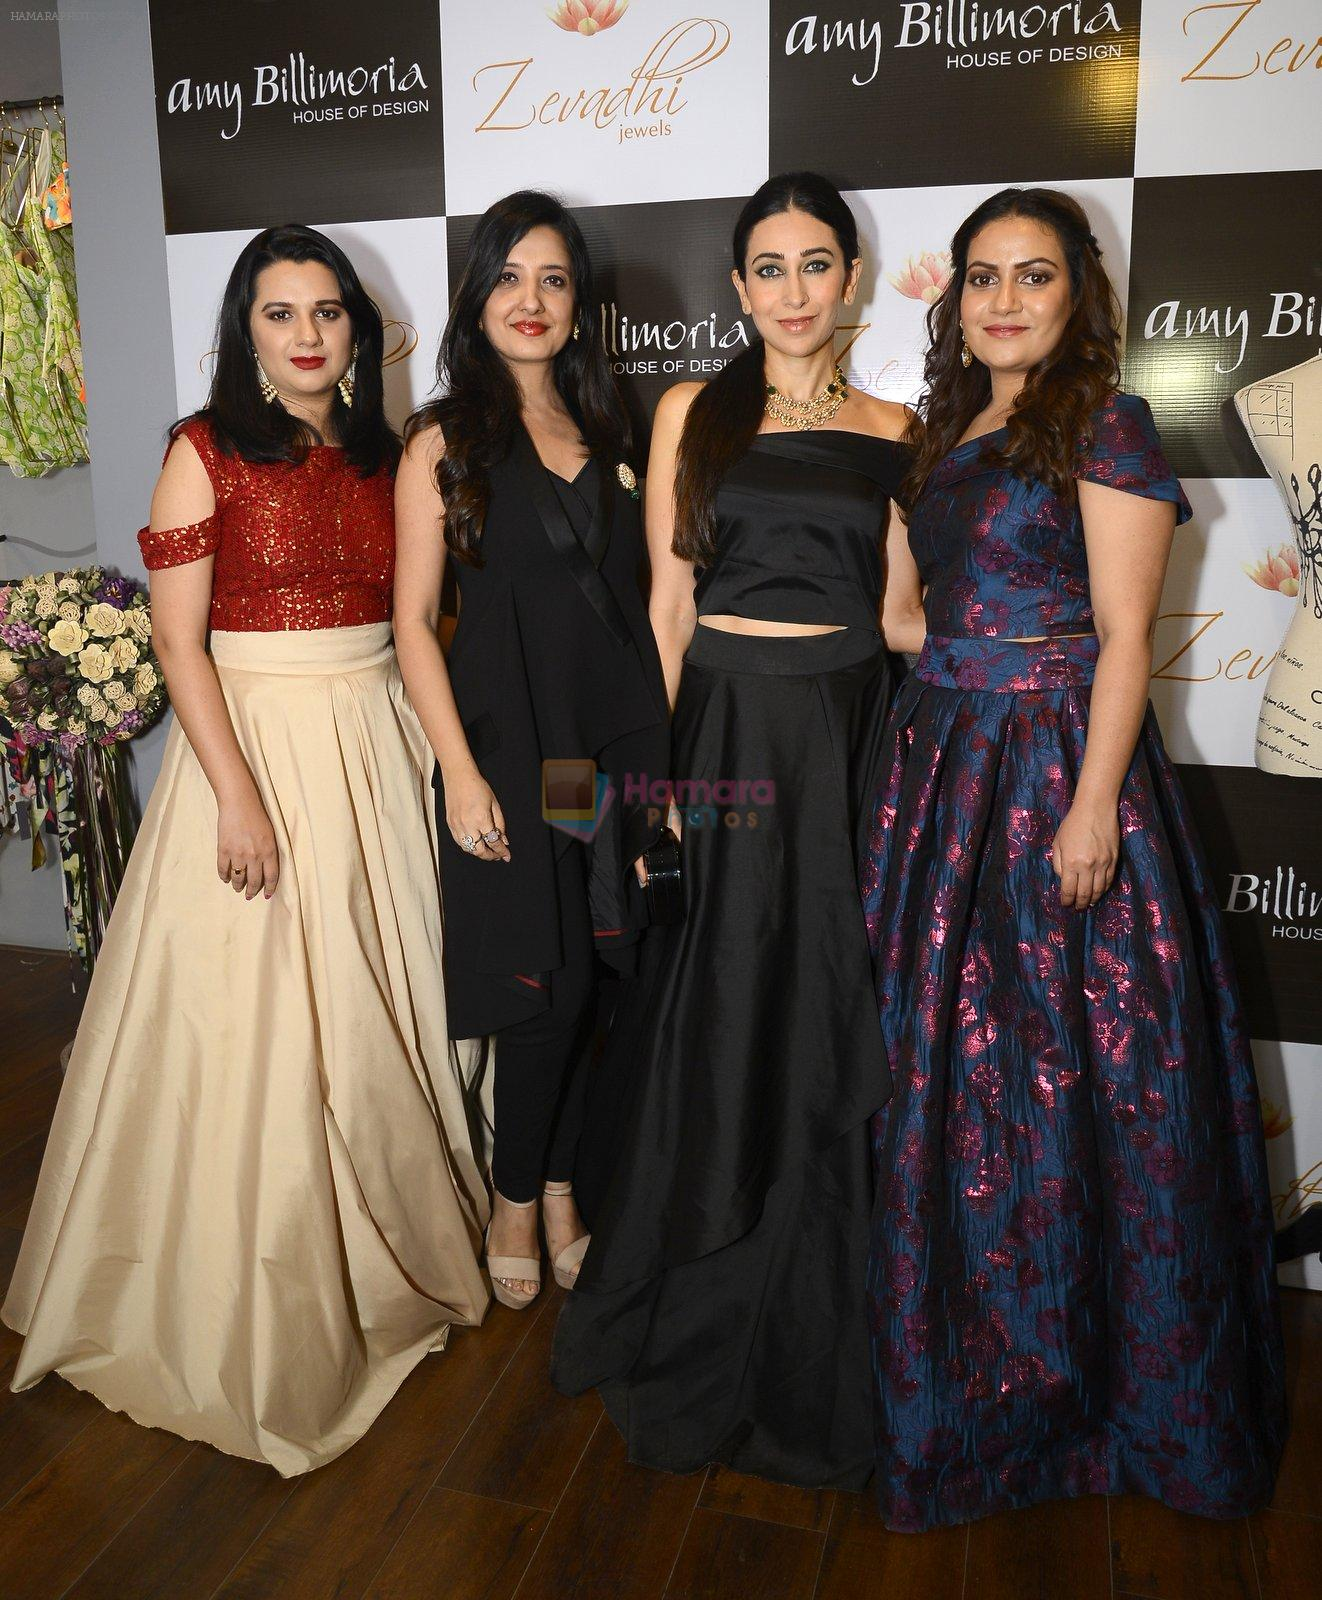 Karisma Kapoor at Amy Billimoria and Zevadhi Jewels launch on 22nd Aug 2016